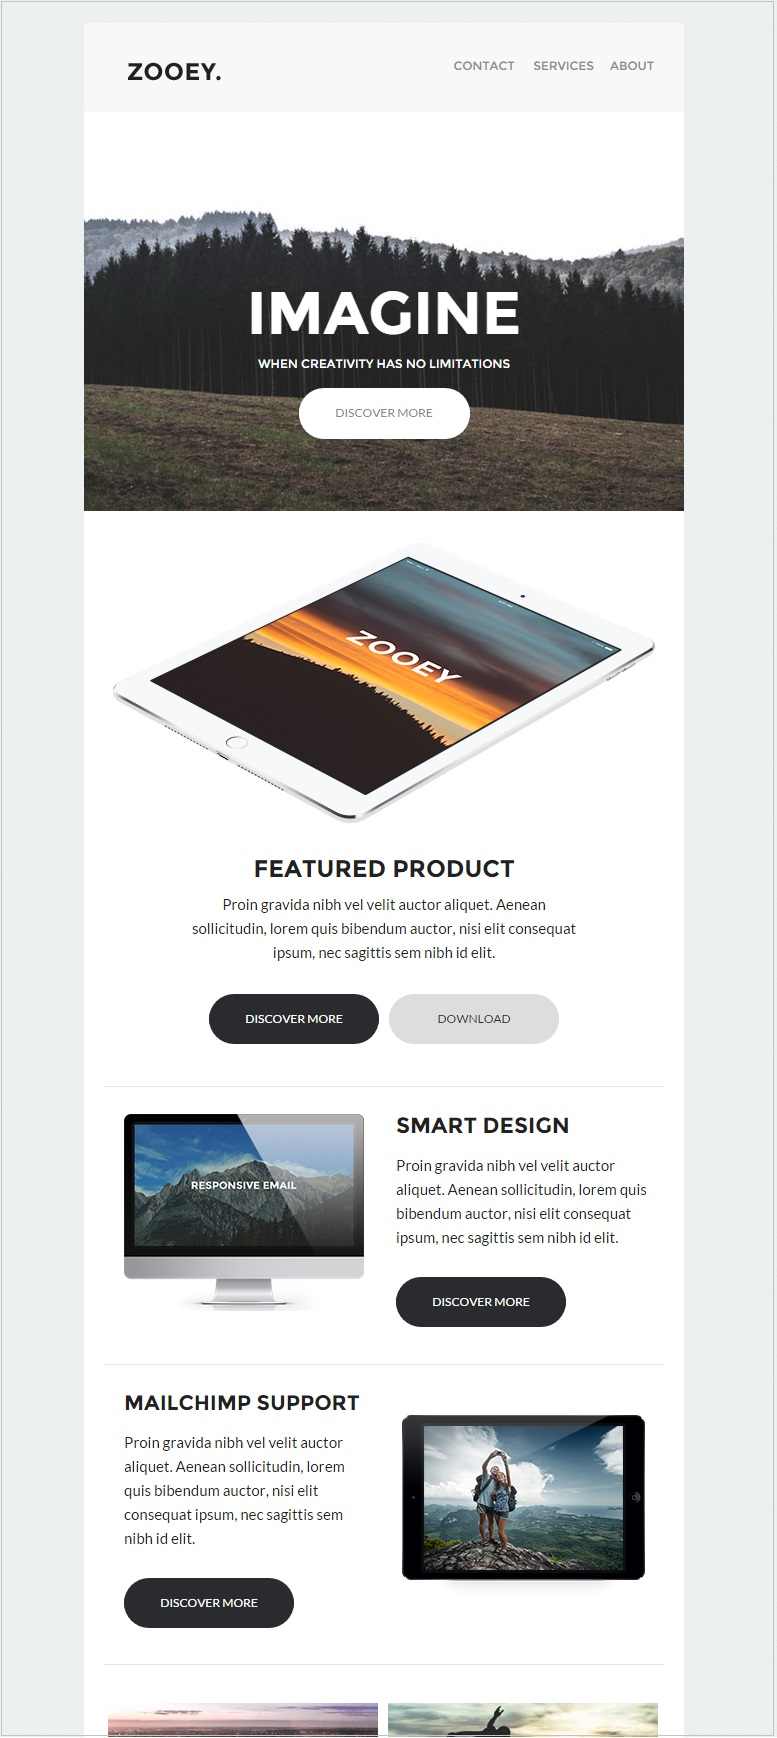 Zooey newsletter email templates